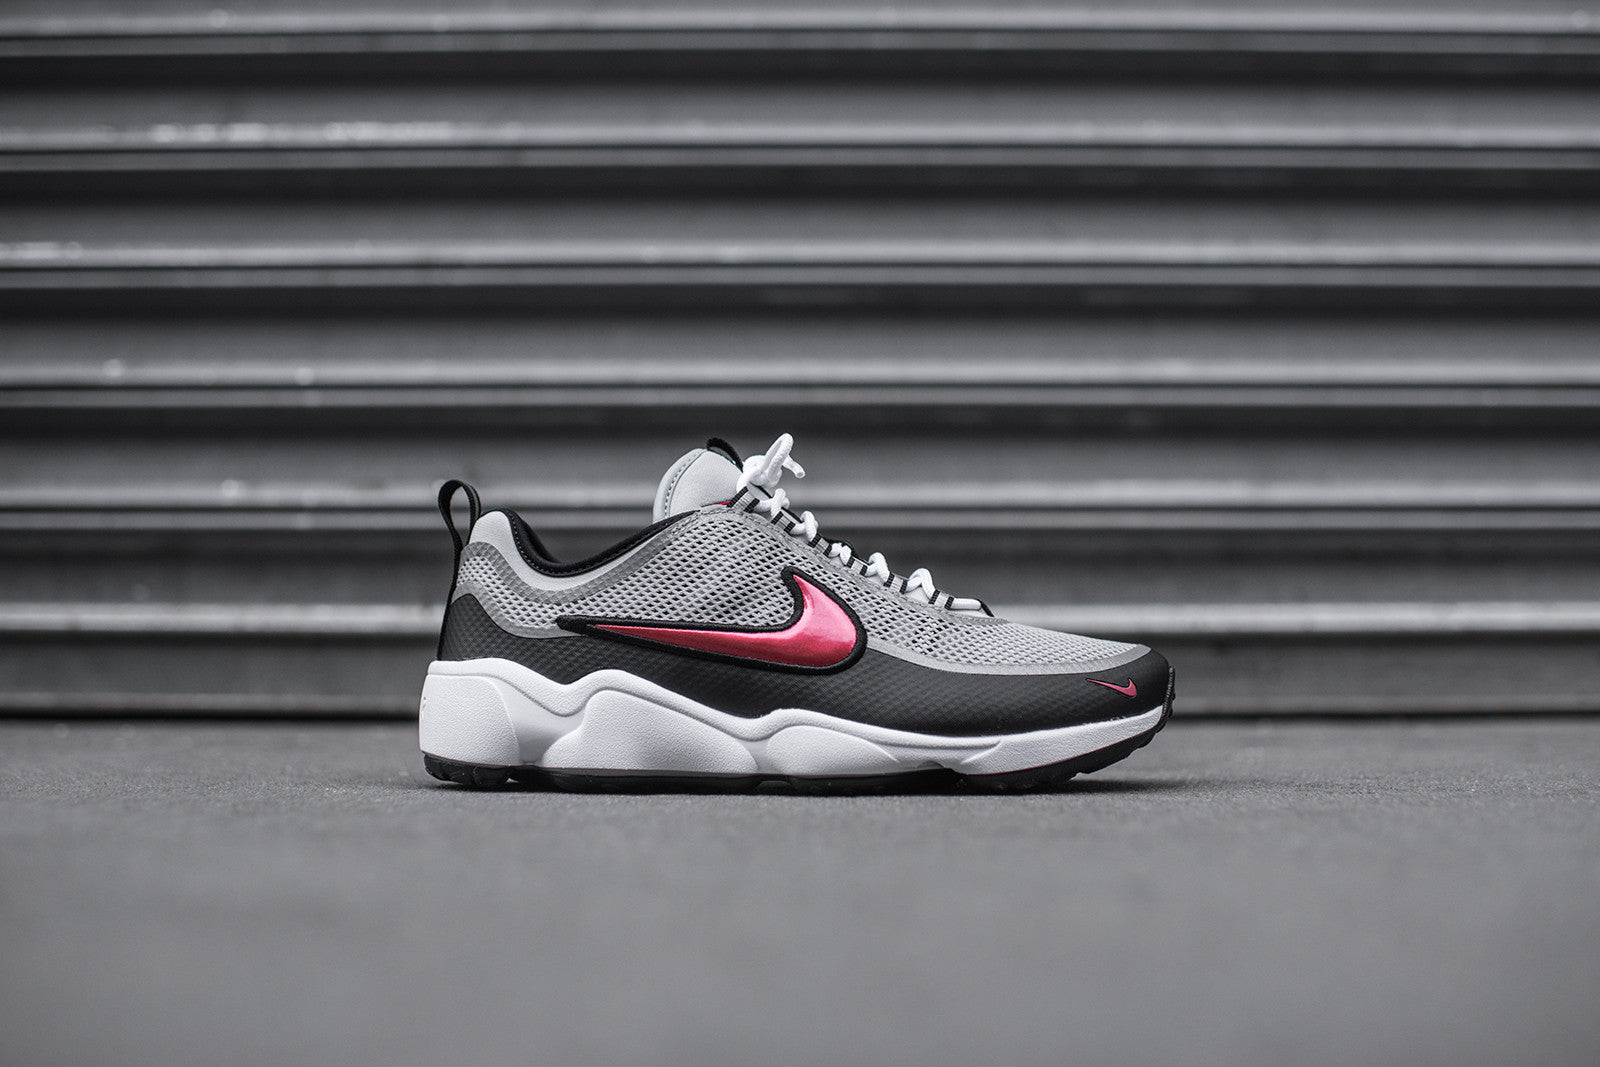 3c2f404e2cb6 Nike Air Zoom Spiridon Ultra - Silver. February 17